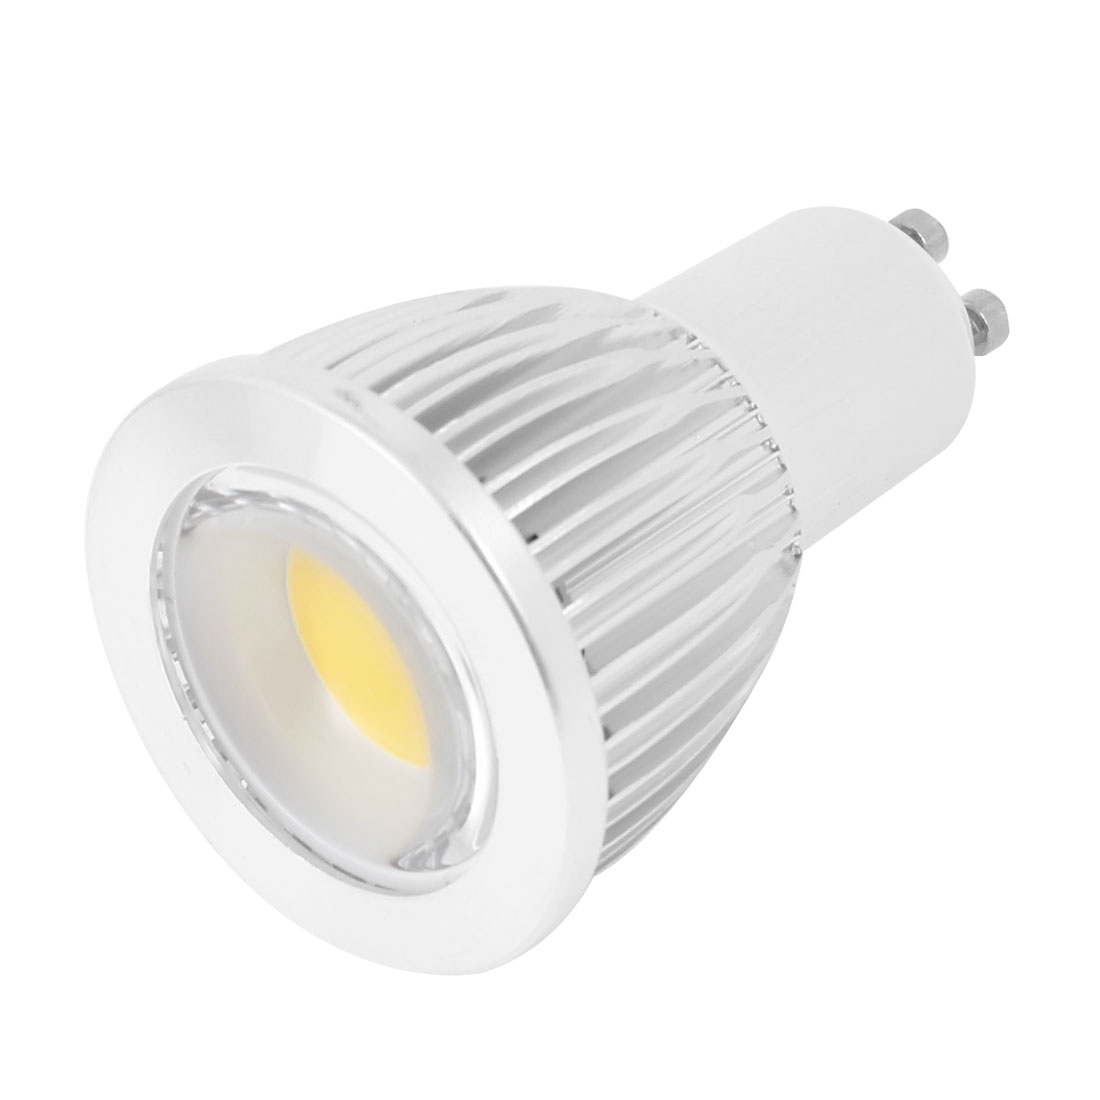 Energy Saving GU10 Warm White COB LED Spotlight Light Lamp Bulb AC 85-265V 5W